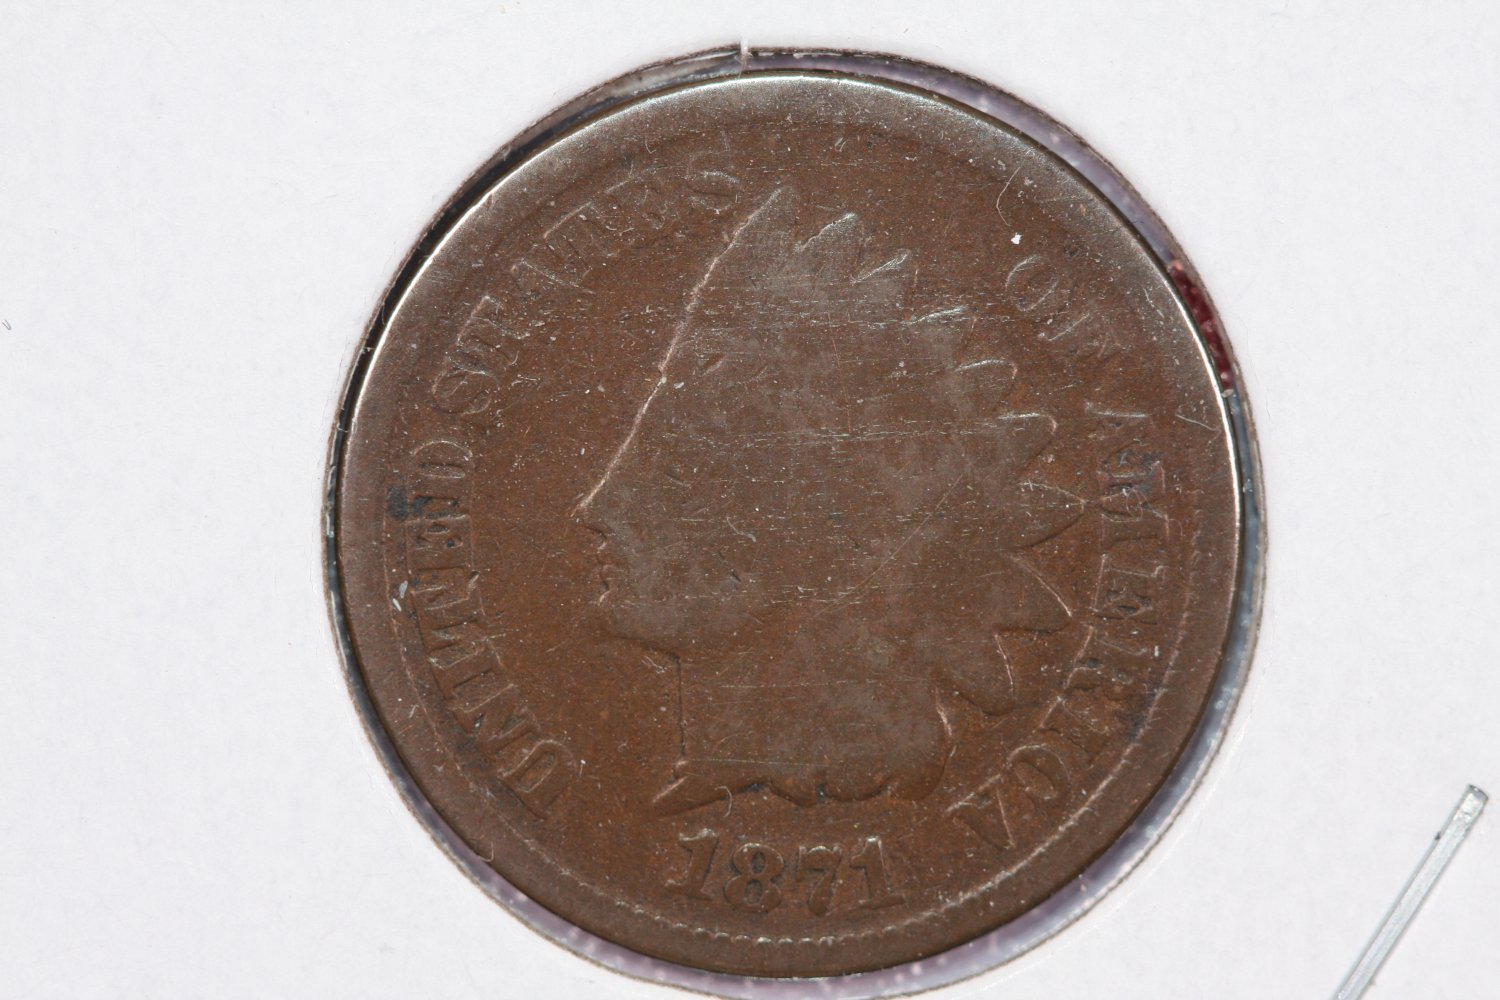 1871 1C Indiain Head Cents, Fair Circulated Condiiton. Store Sale #2525